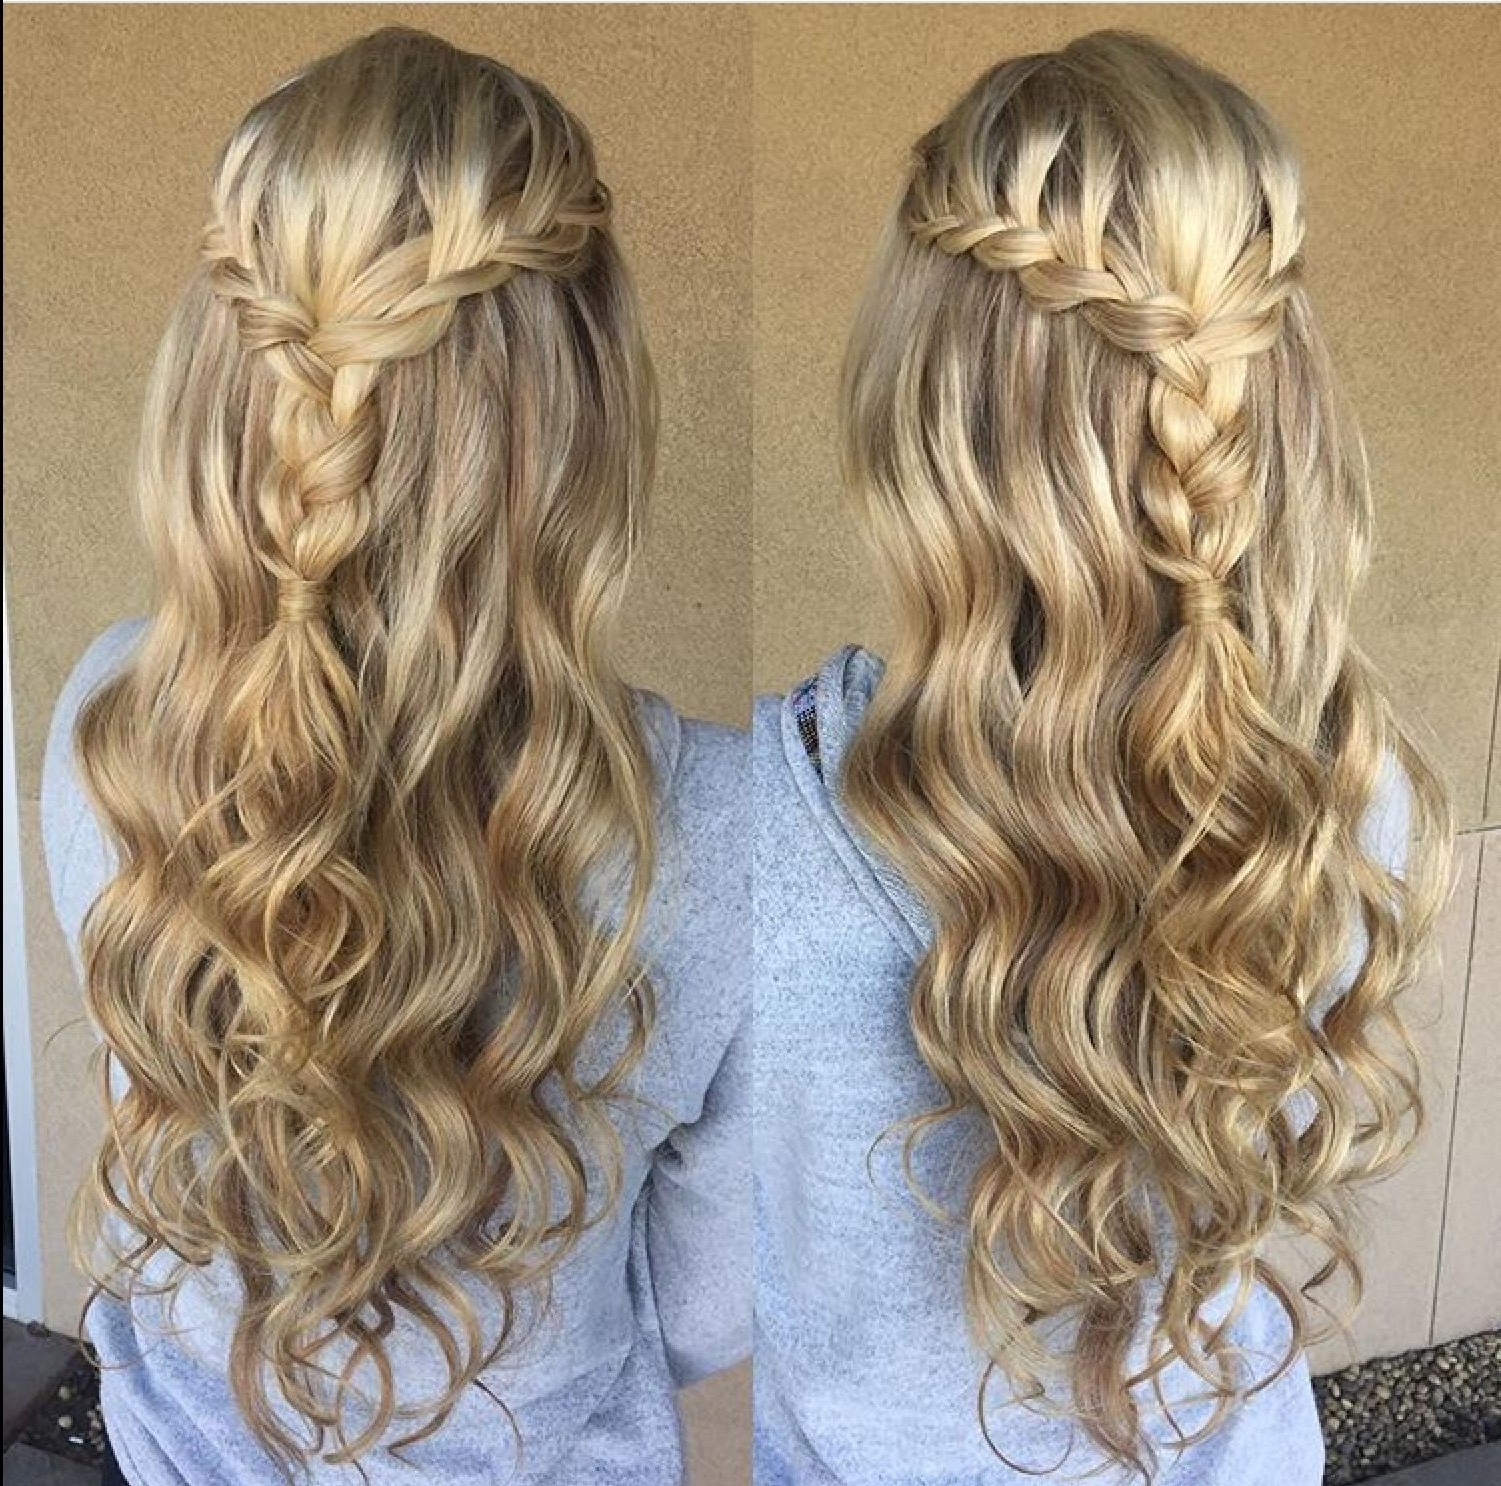 Blonde Braid Prom Formal Hairstyle Half Up Long Hair Wedding Updo Within Braided Hair Updo Hairstyles (View 4 of 15)